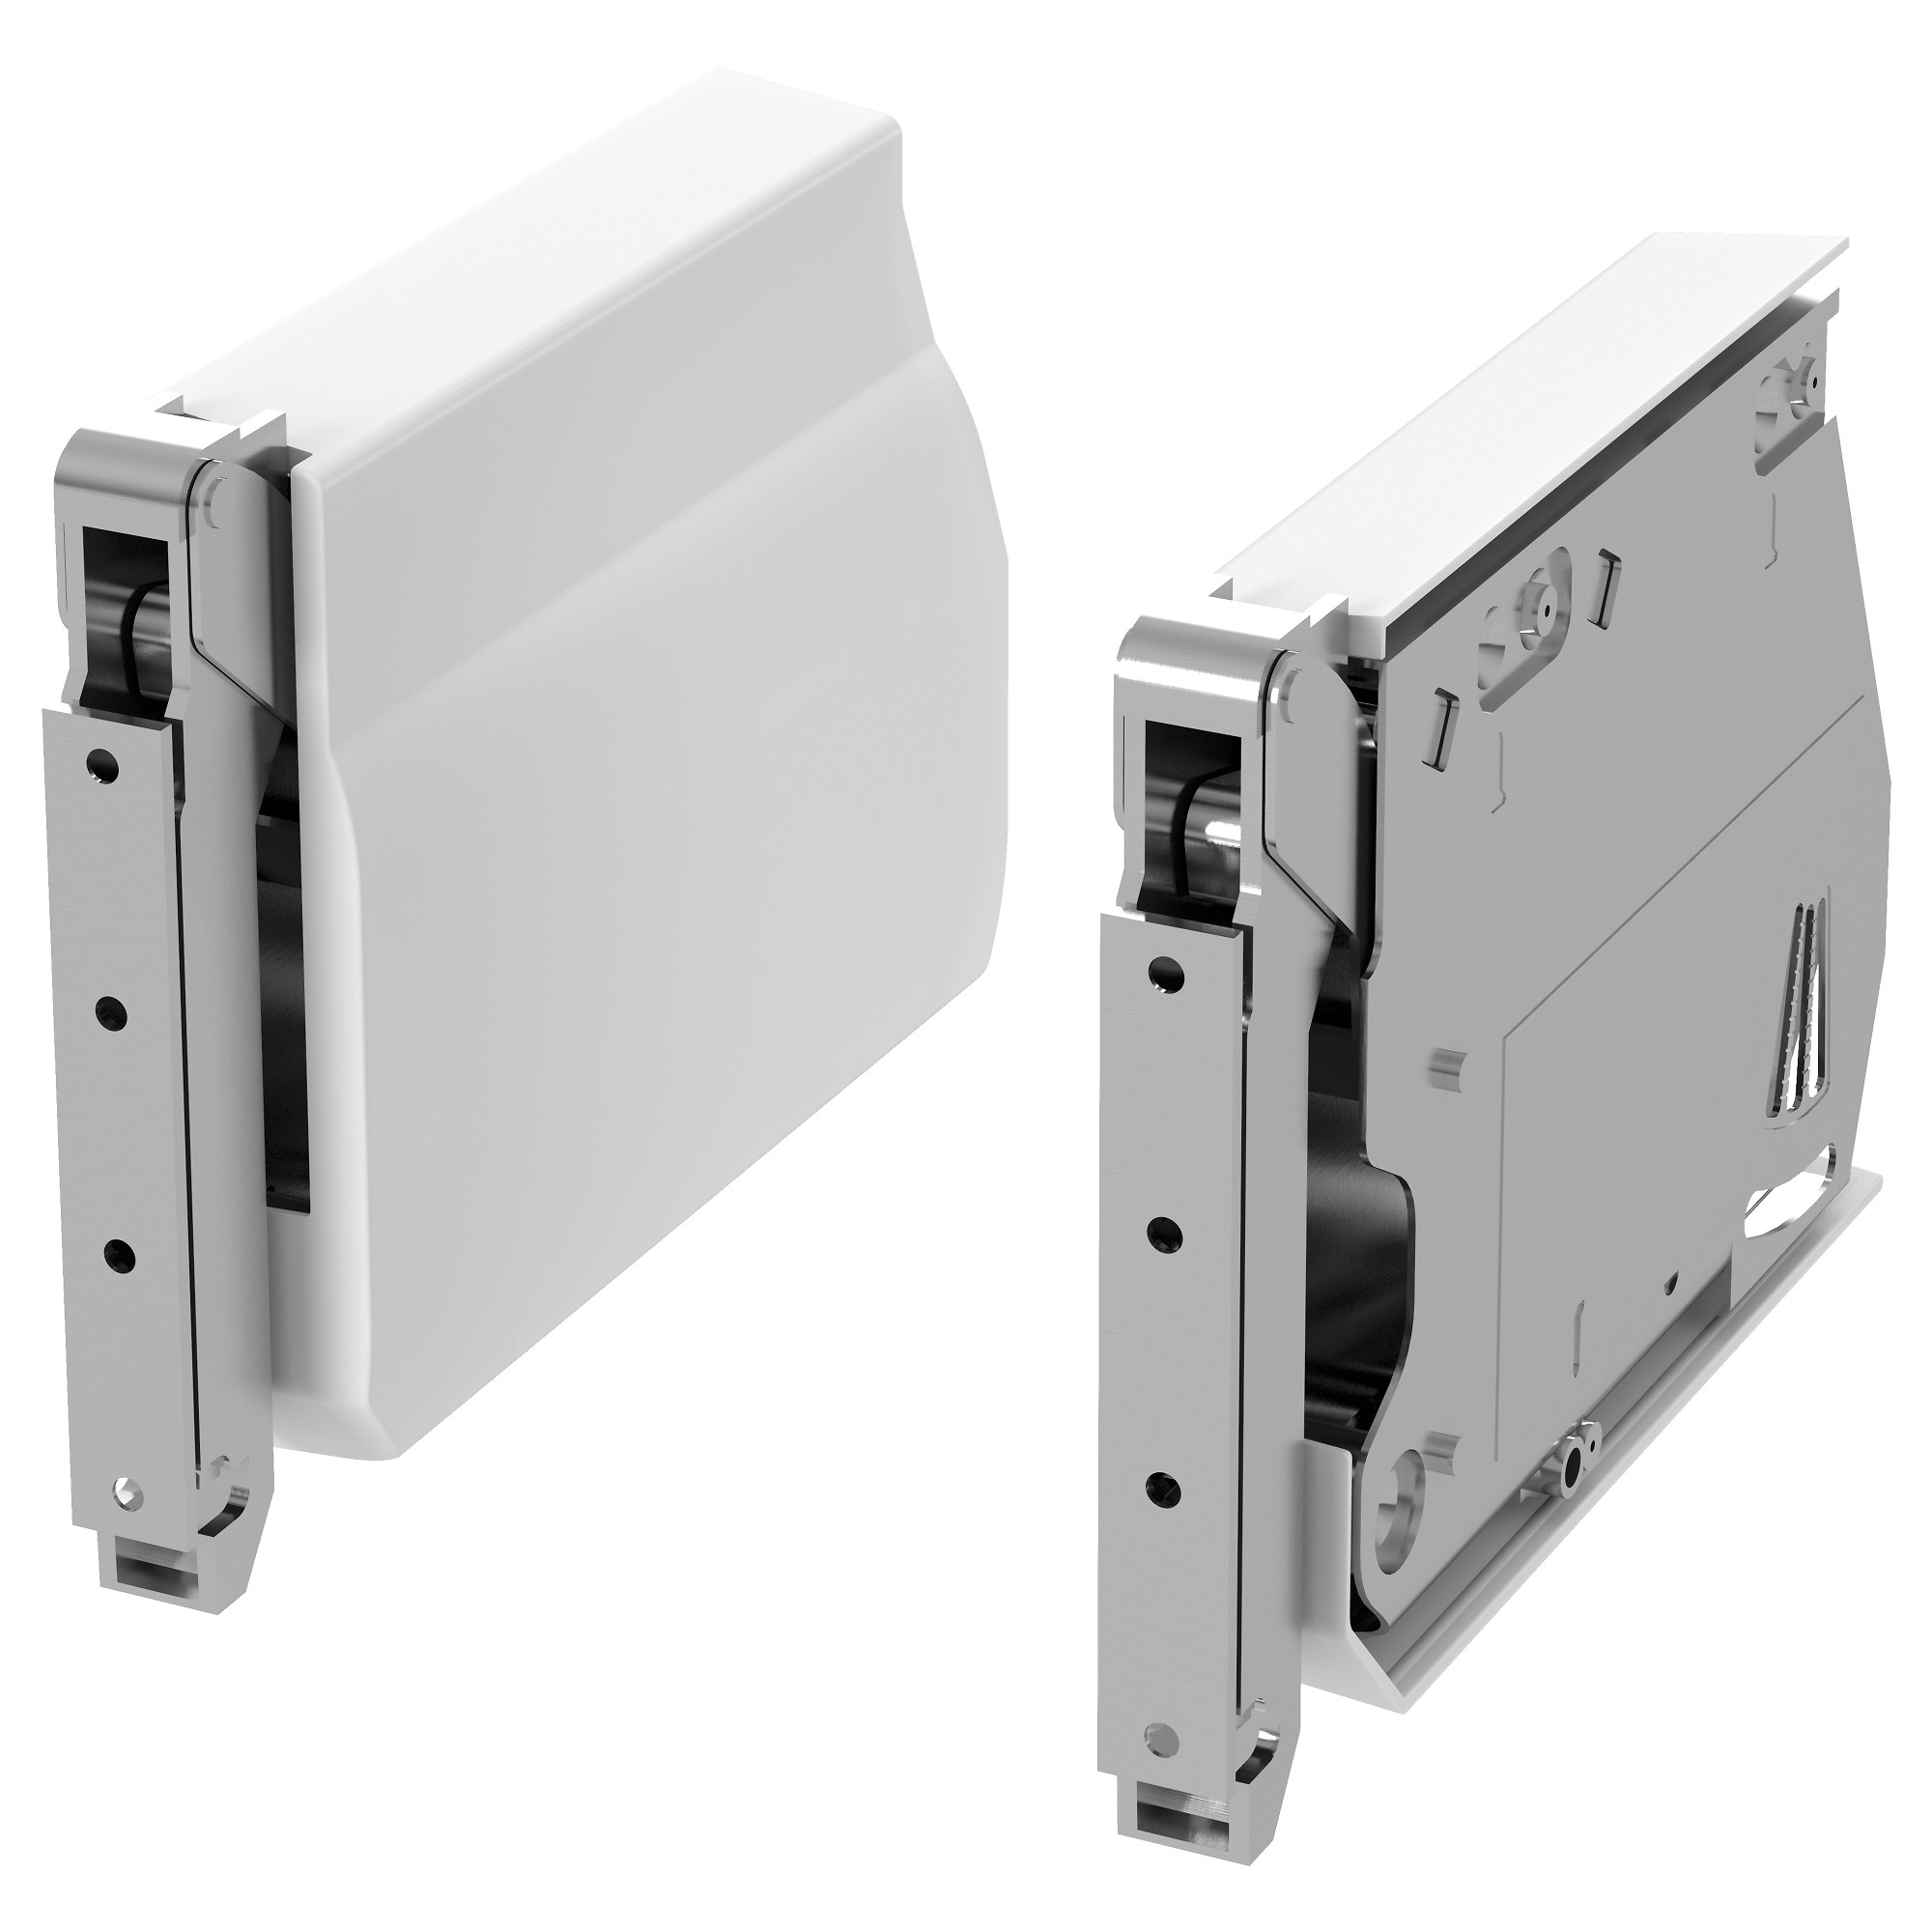 UTRUSTA Large Hinge For Horizontal Door   White   IKEA